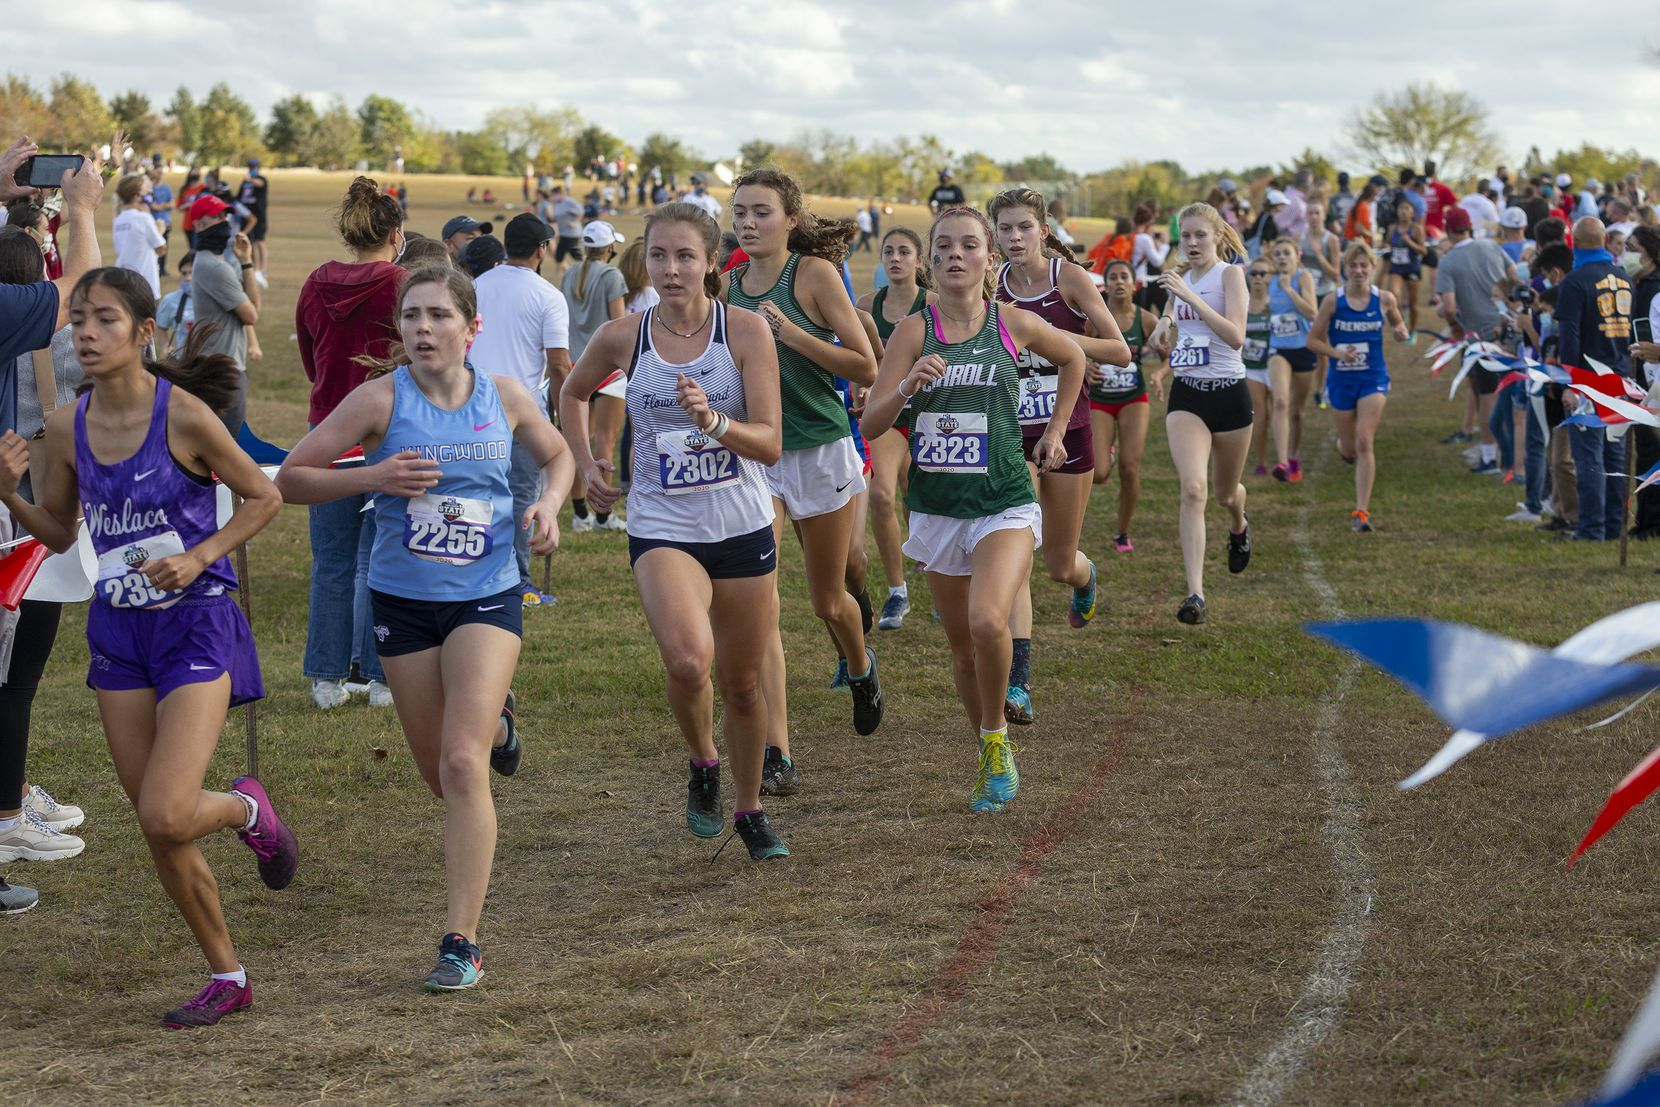 Flower Mound's Hannah McLaughlin (2302) and Southlake Carroll's Ava Bushaw (2323)compete in the girls UIL Class 6A state cross country meet in Round Rock, Tuesday, Nov., 24, 2020. (Stephen Spillman/Special Contributor)